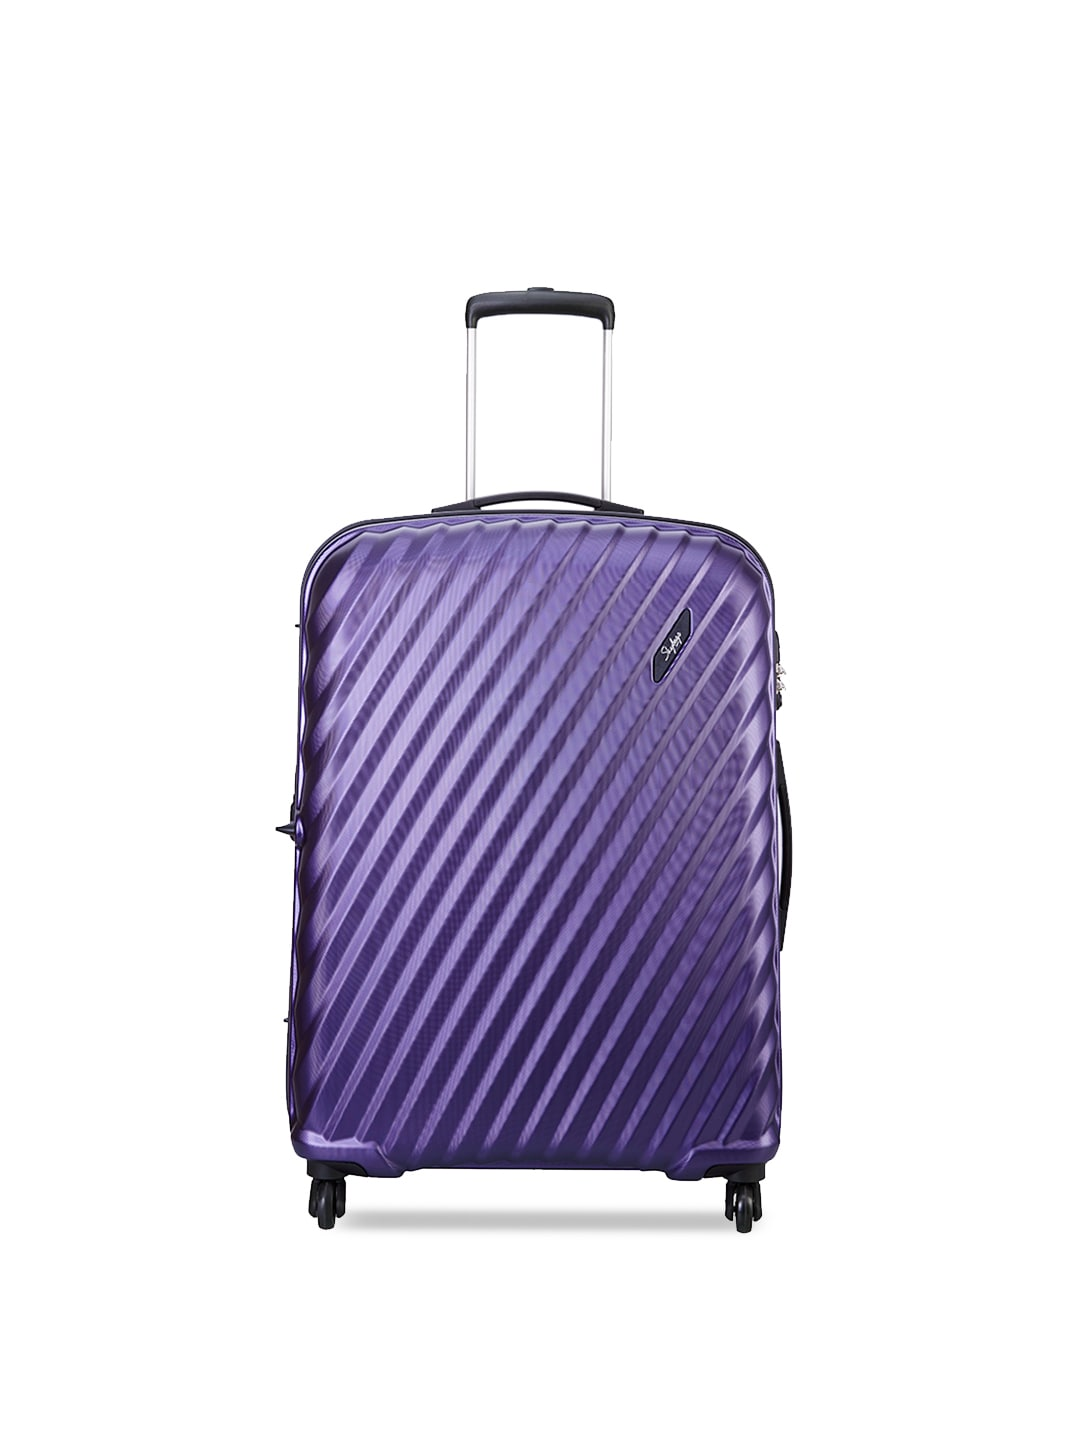 e578dc99ff78 Skybags Trolley - Buy Skybags Trolley online in India